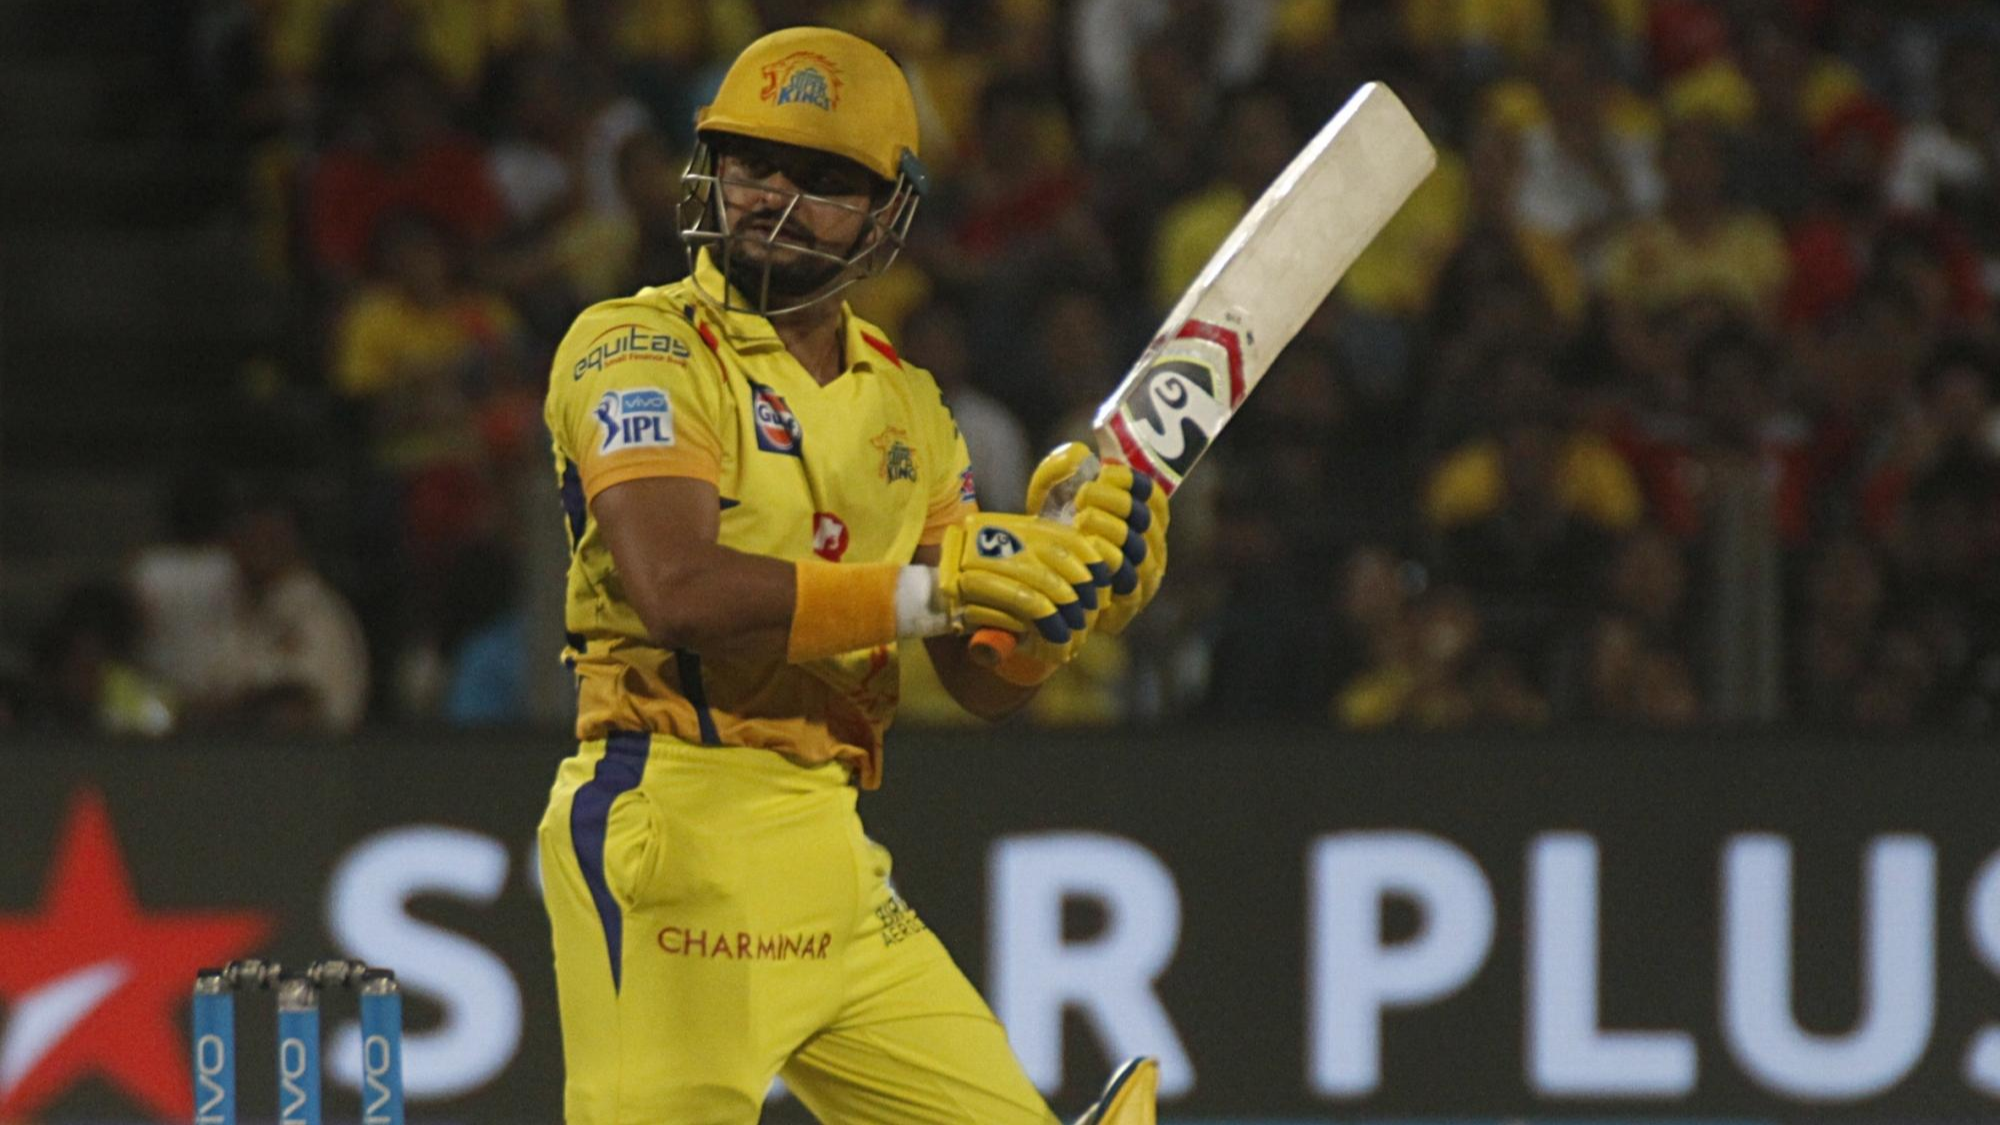 IPL 2018: Twitter reacts as Suresh Raina's spectacular fifty eliminate KXIP from IPL 11